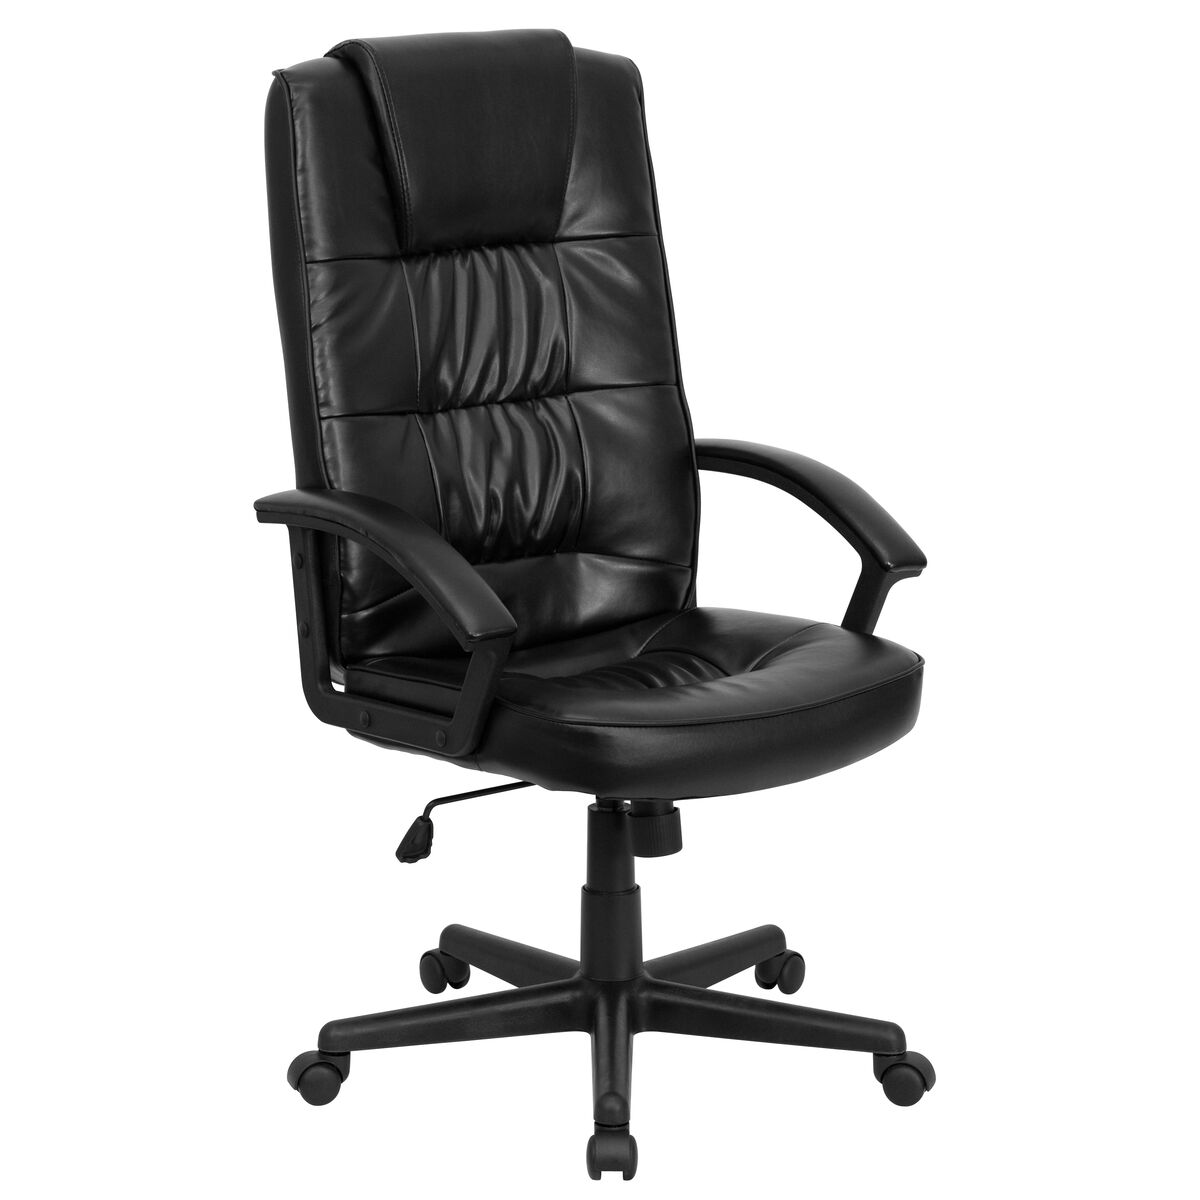 Black high back leather chair go 7102 gg for Furniture 4 schools